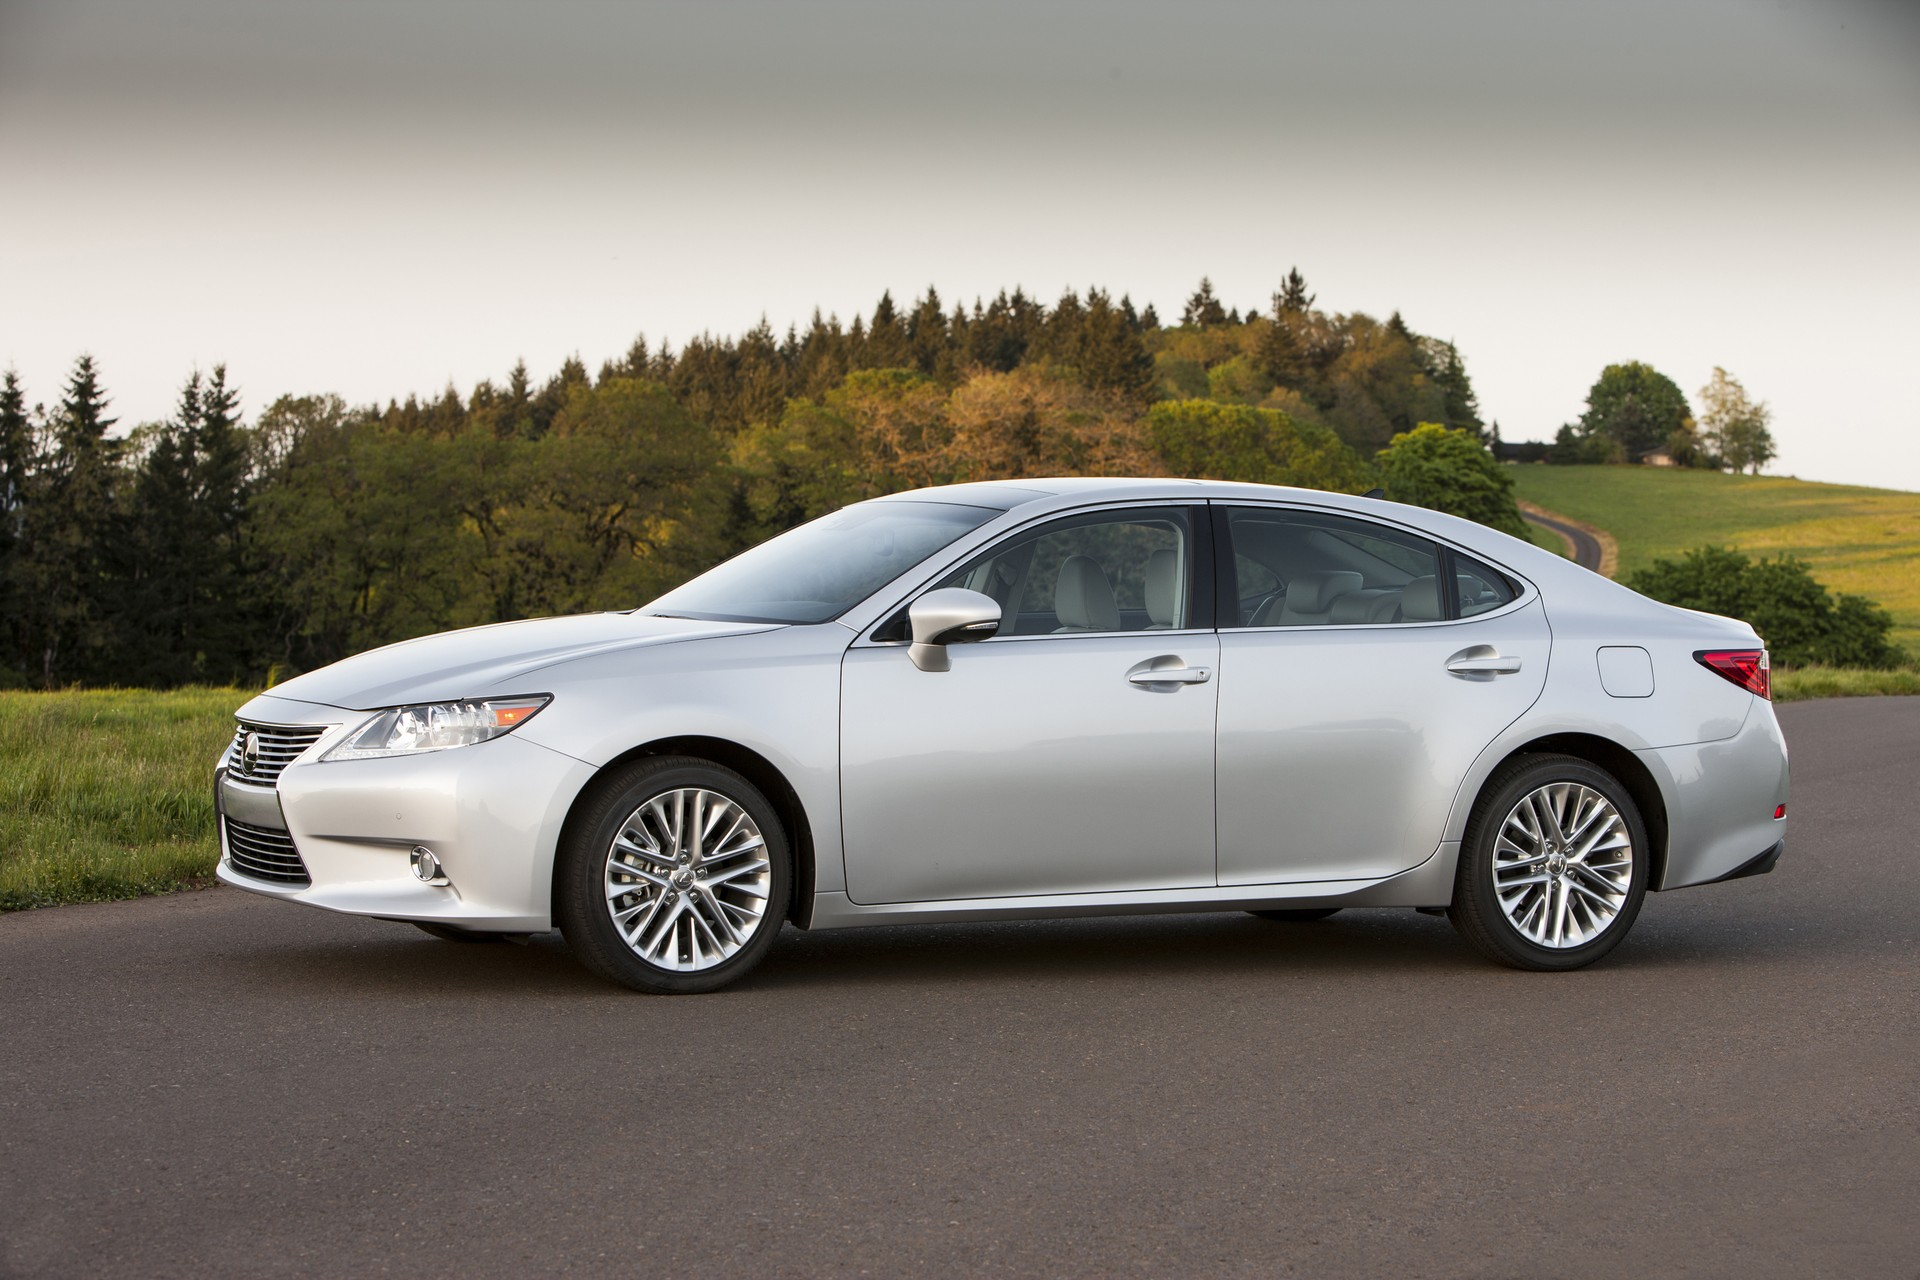 2015 Lexus ES 350 Safety Review and Crash Test Ratings - The Car ...